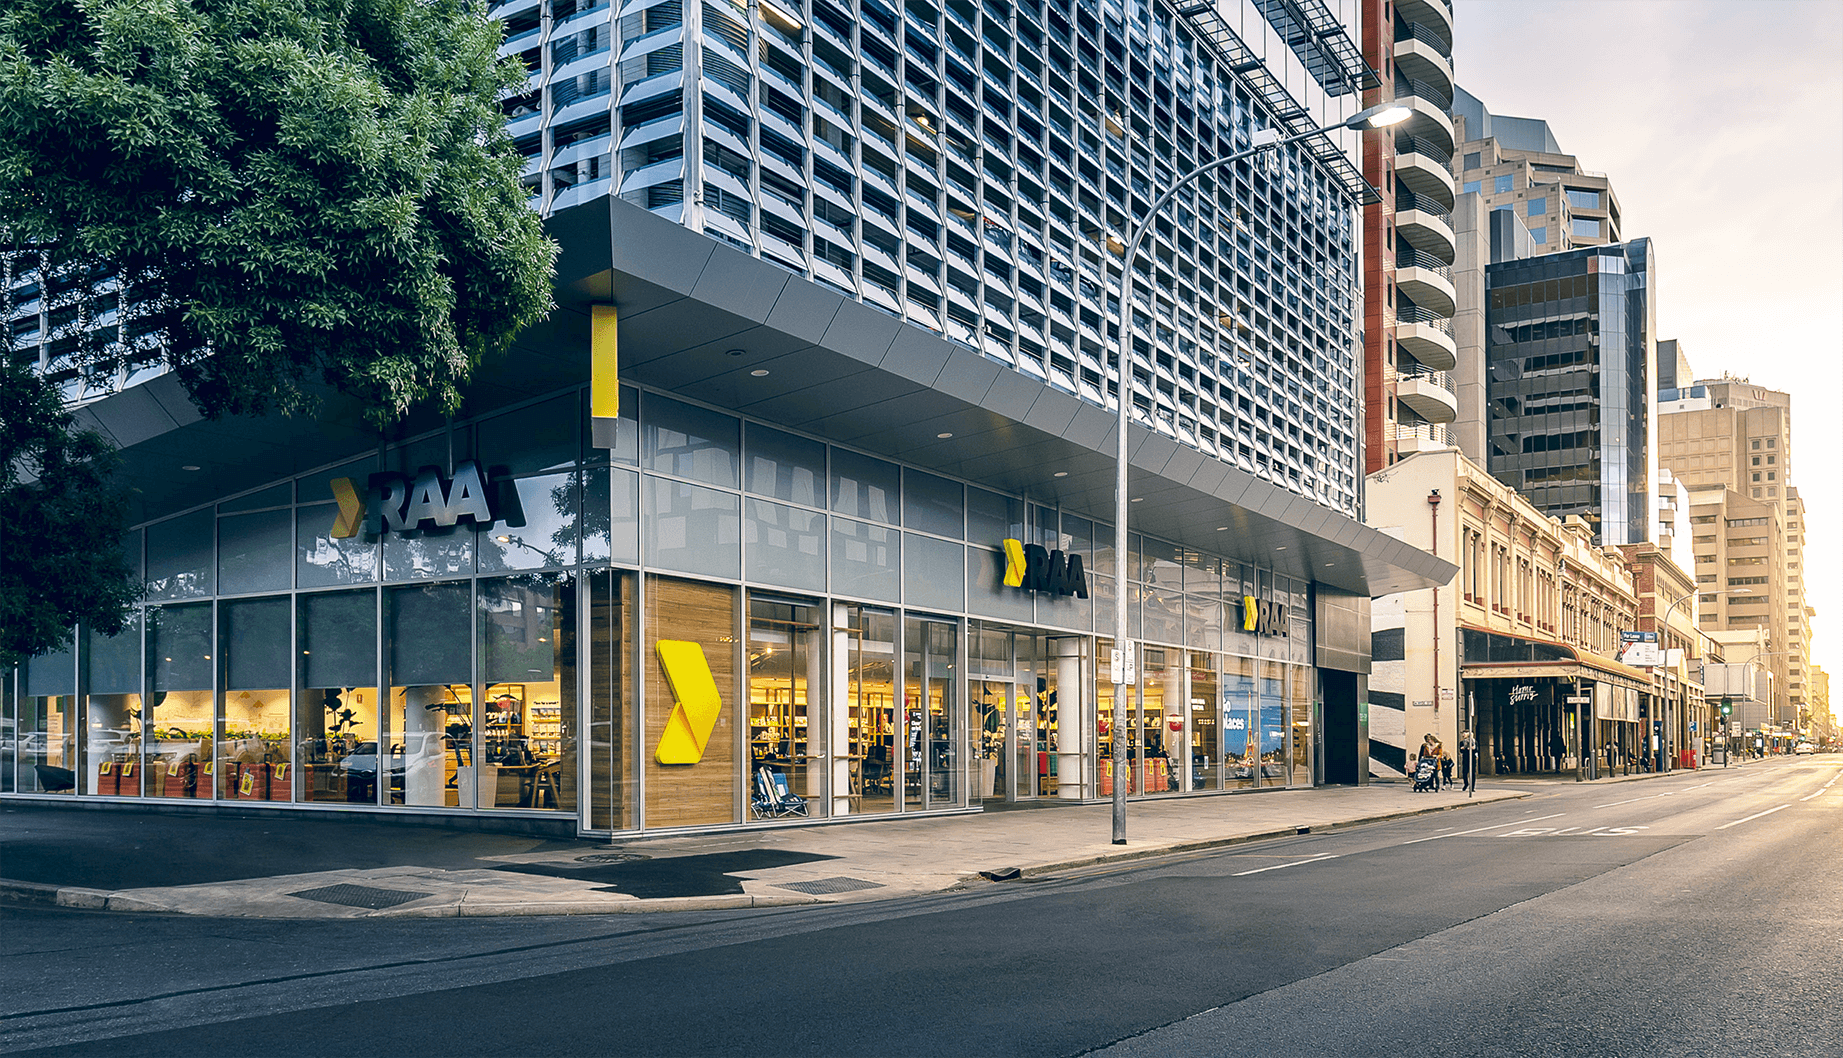 The street frontage of an RAA store in central Adelaide